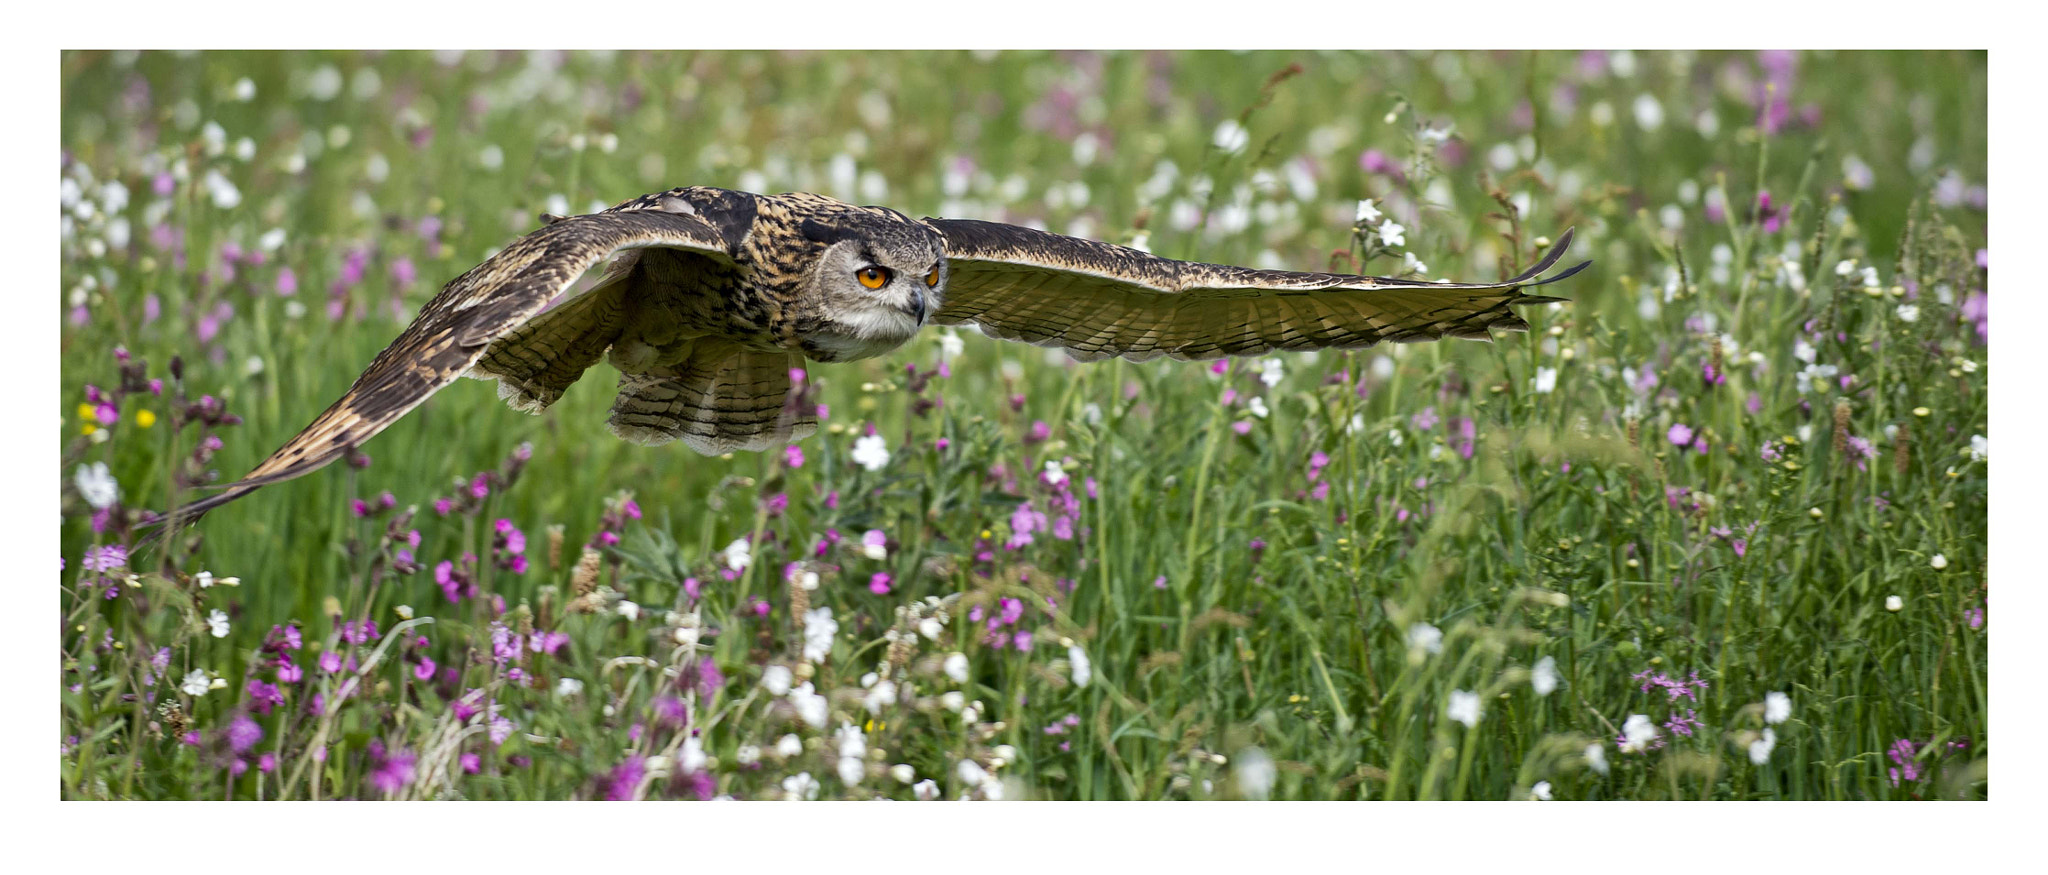 Photograph Eagle Owl by Dave Kitson on 500px